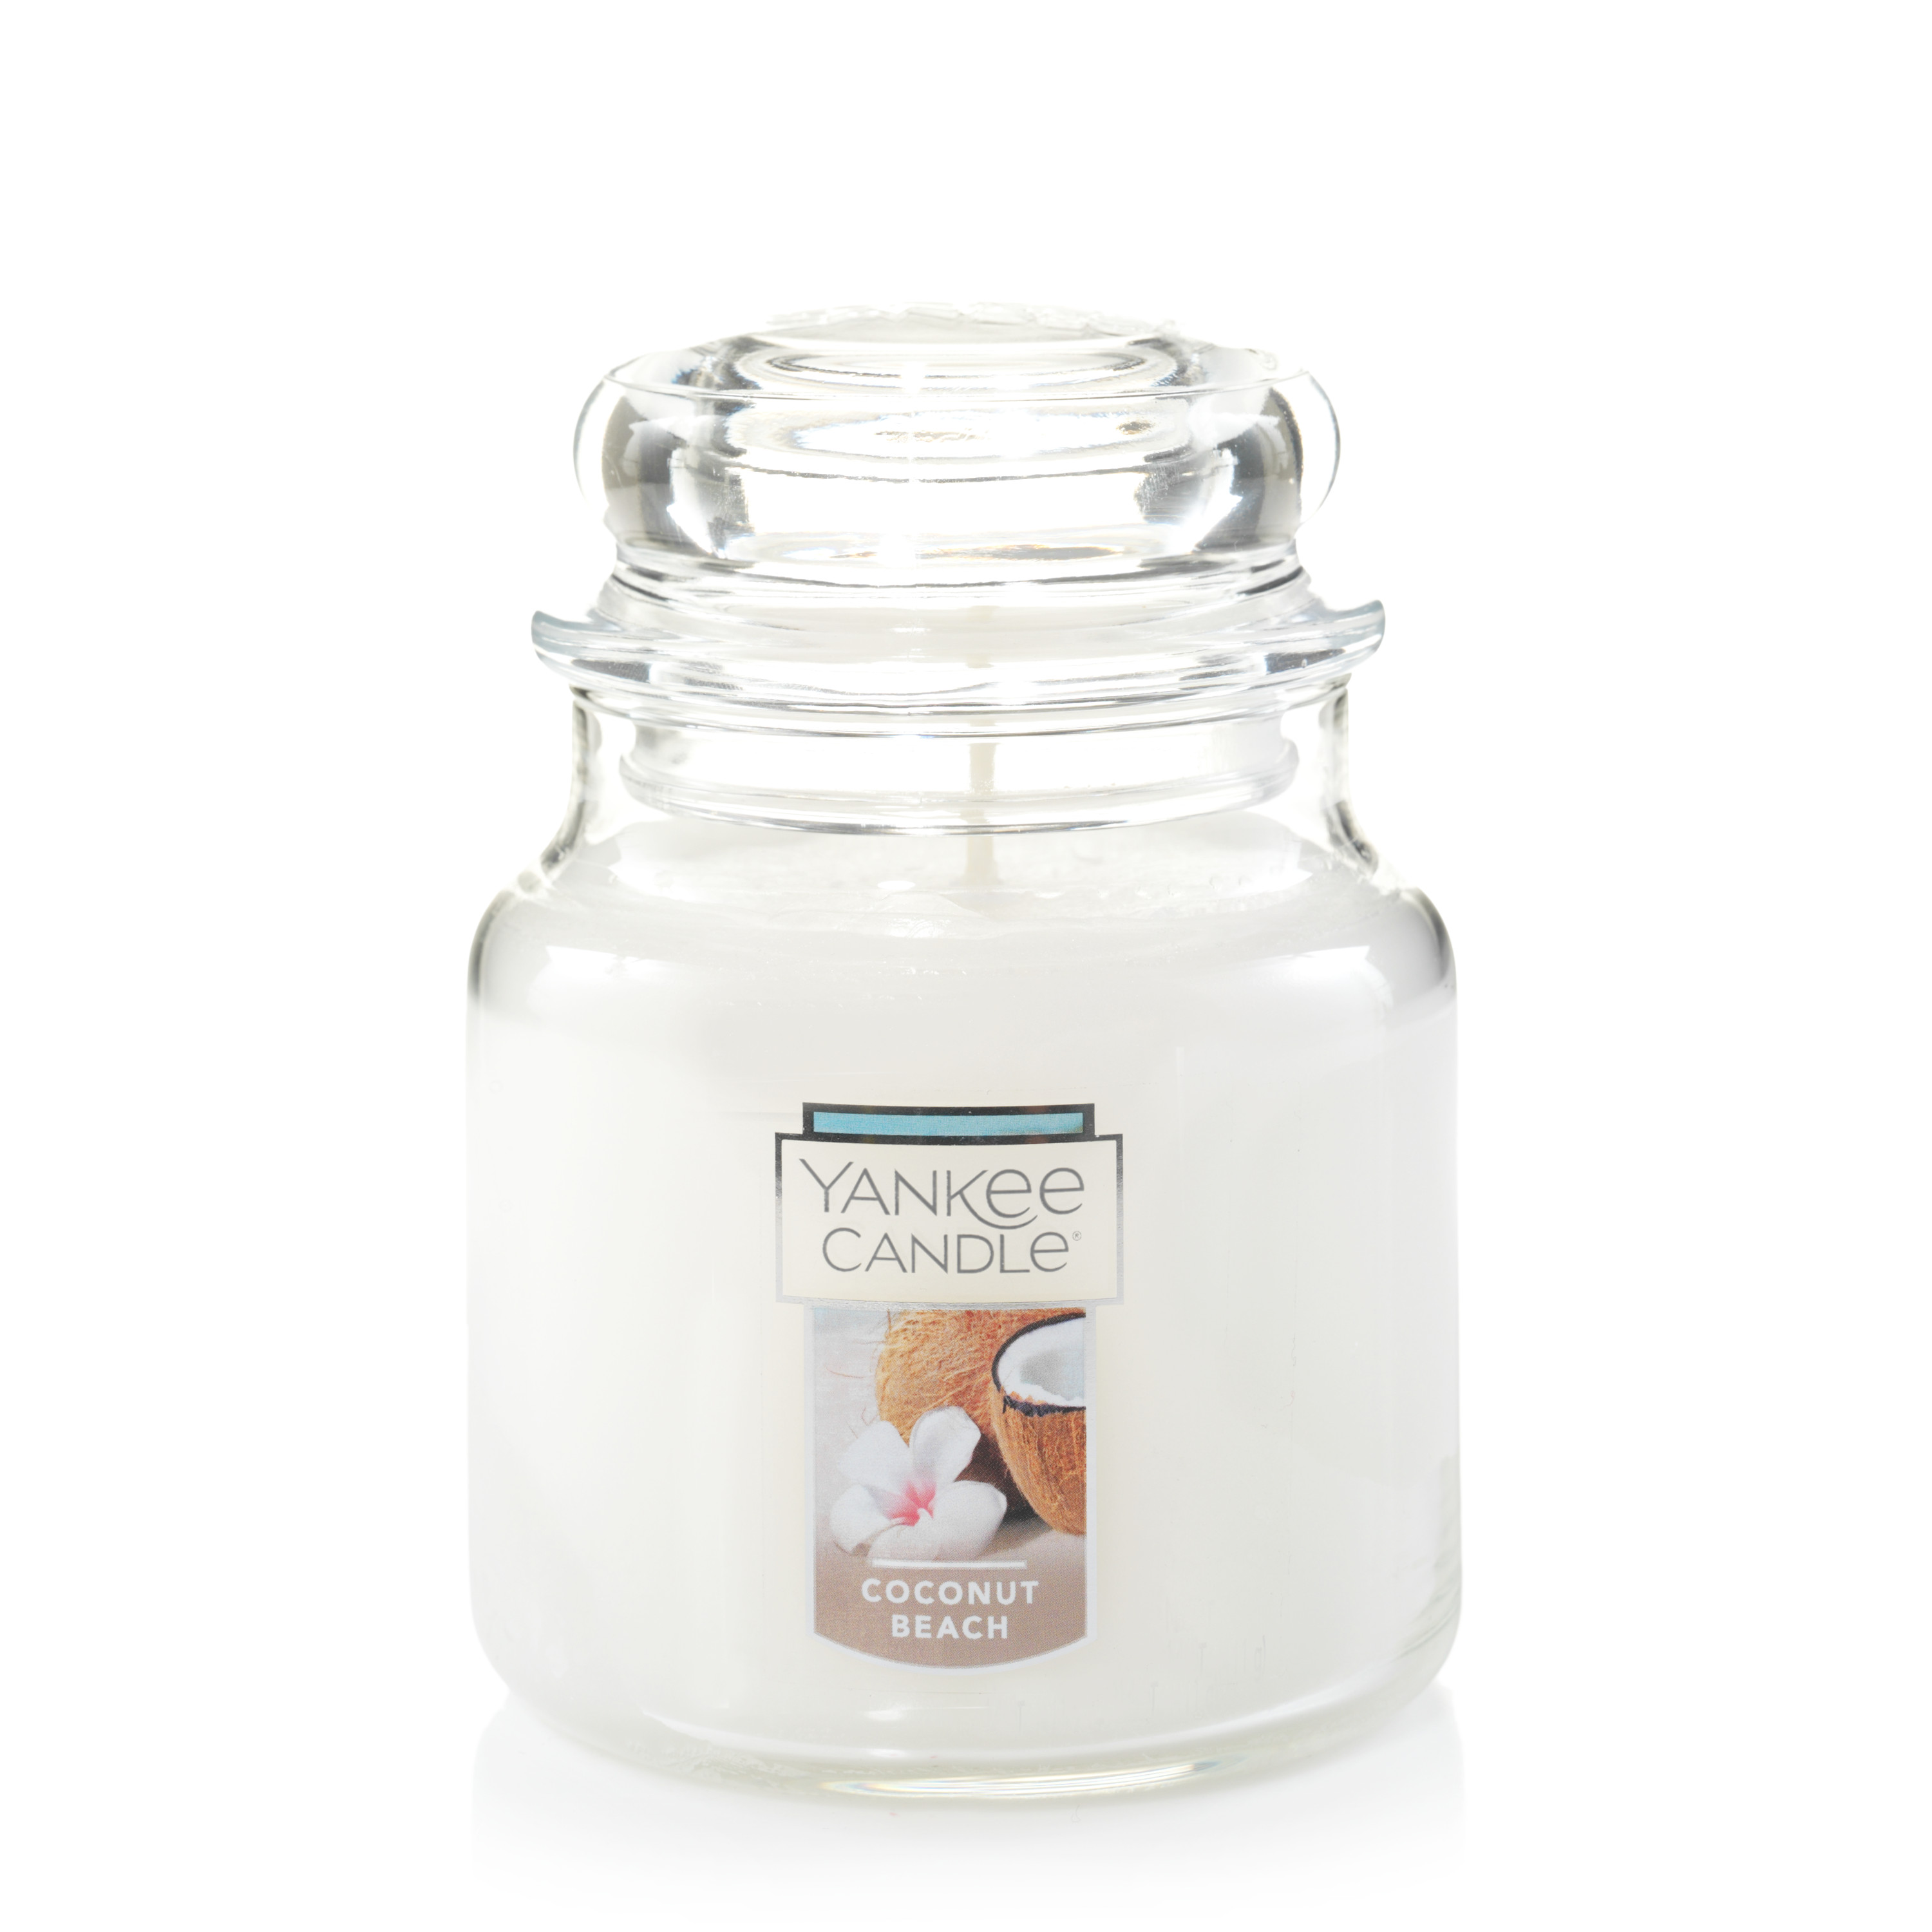 Yankee Candle Large 2-Wick Tumbler Scented Candle, Coconut Beach by Yankee Candle Company